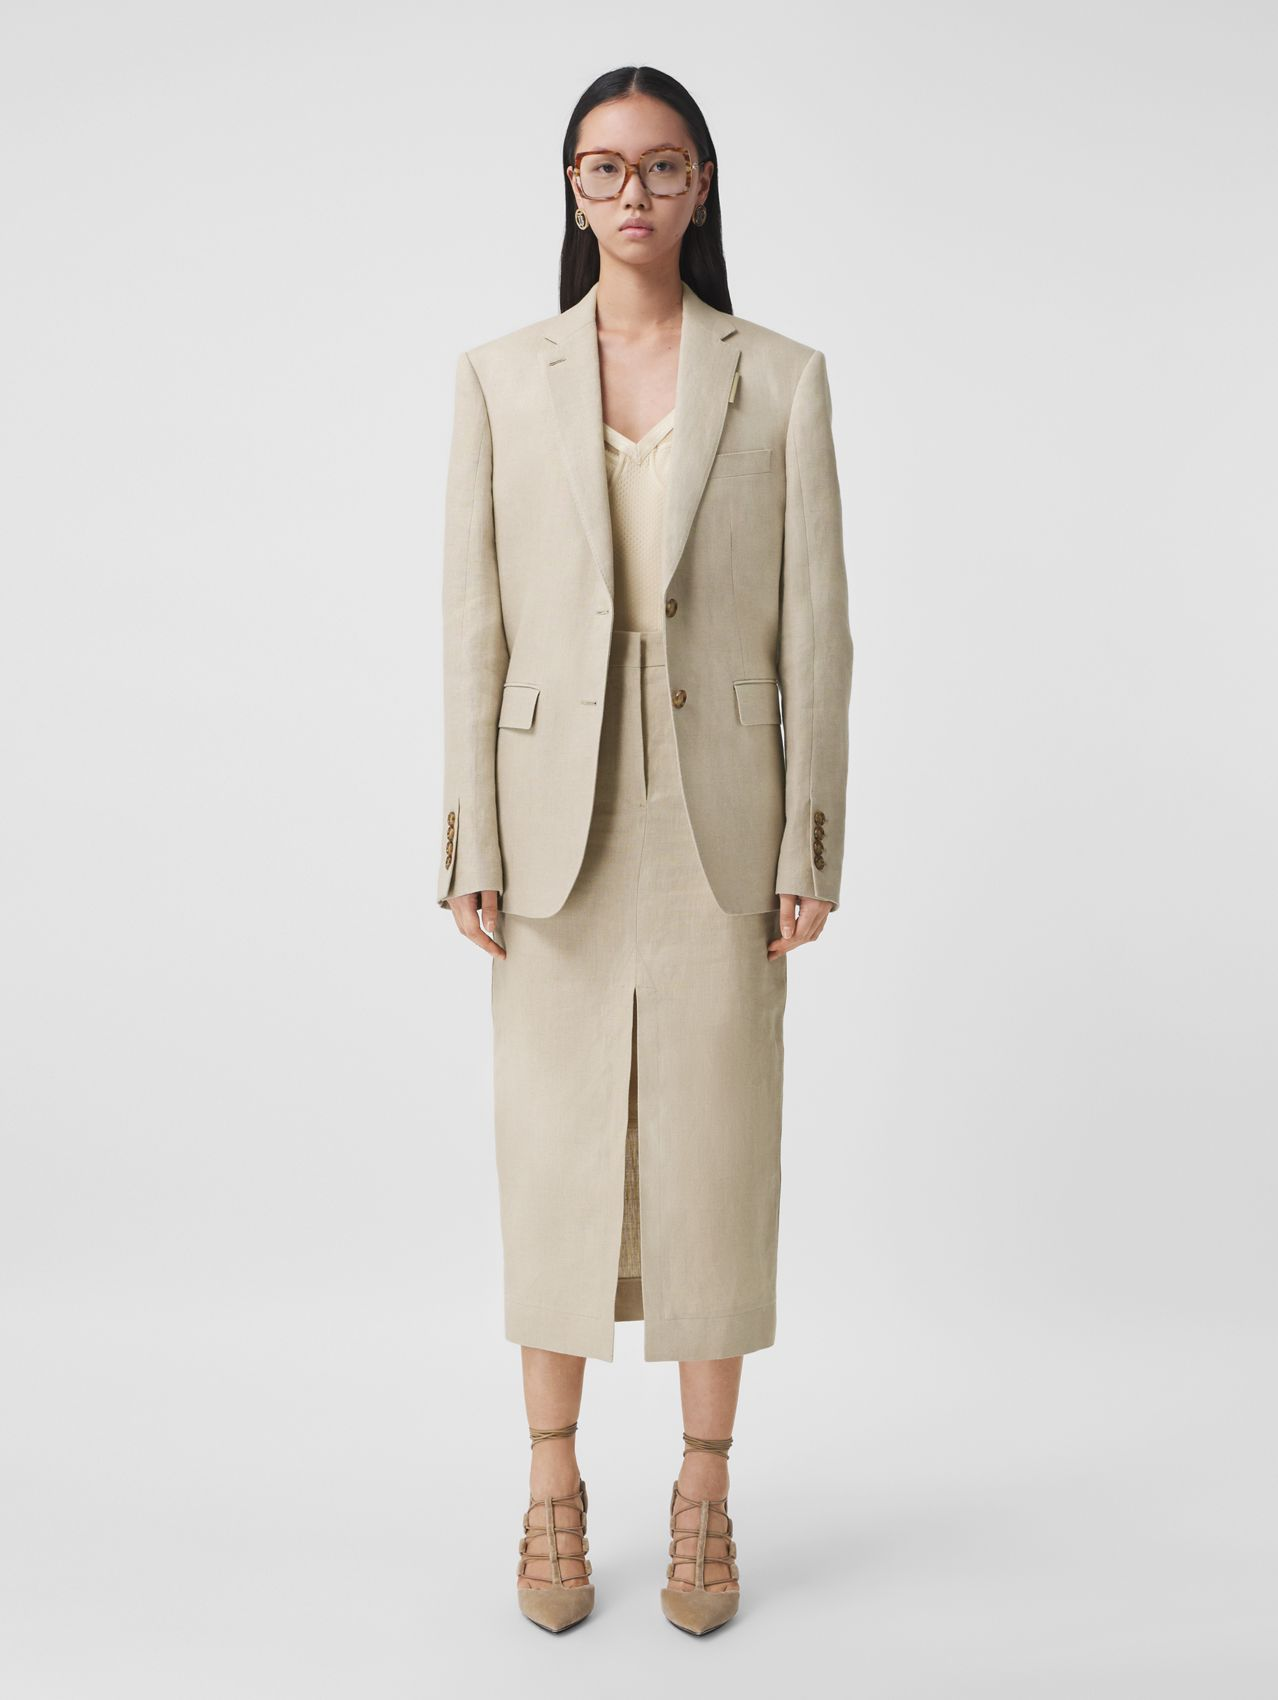 Linen Oversized Tailored Jacket in Oatmeal